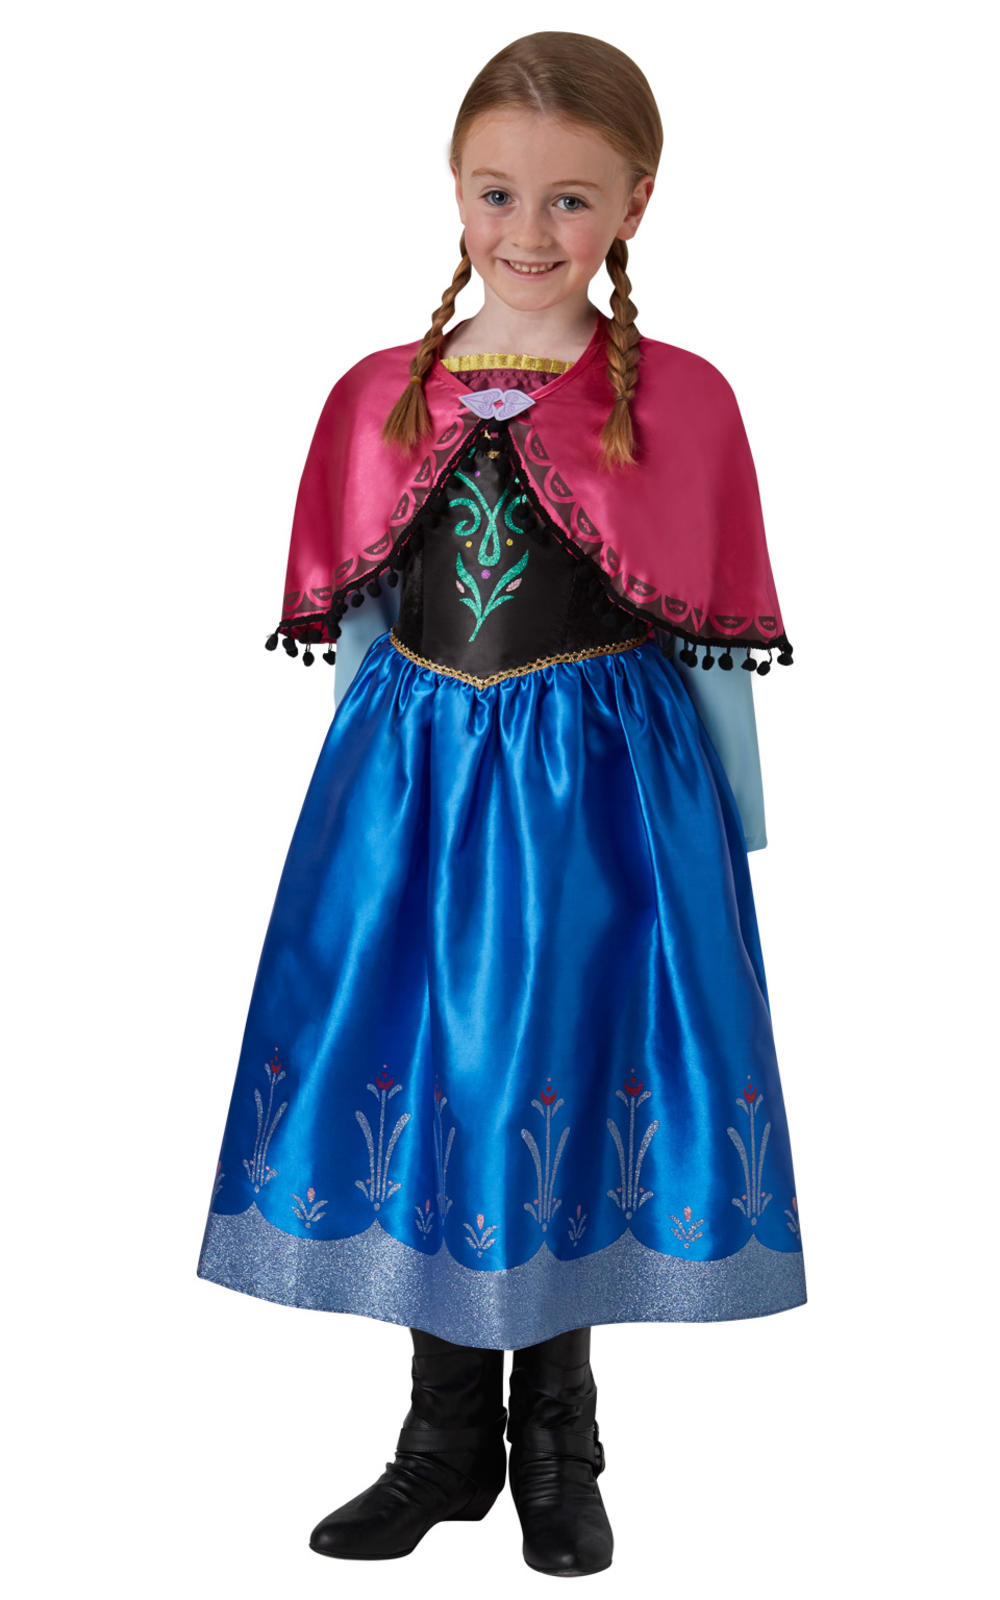 Deluxe Anna Girls Fancy Dress Ice Queen Disney Princess Kids Costume Outfit